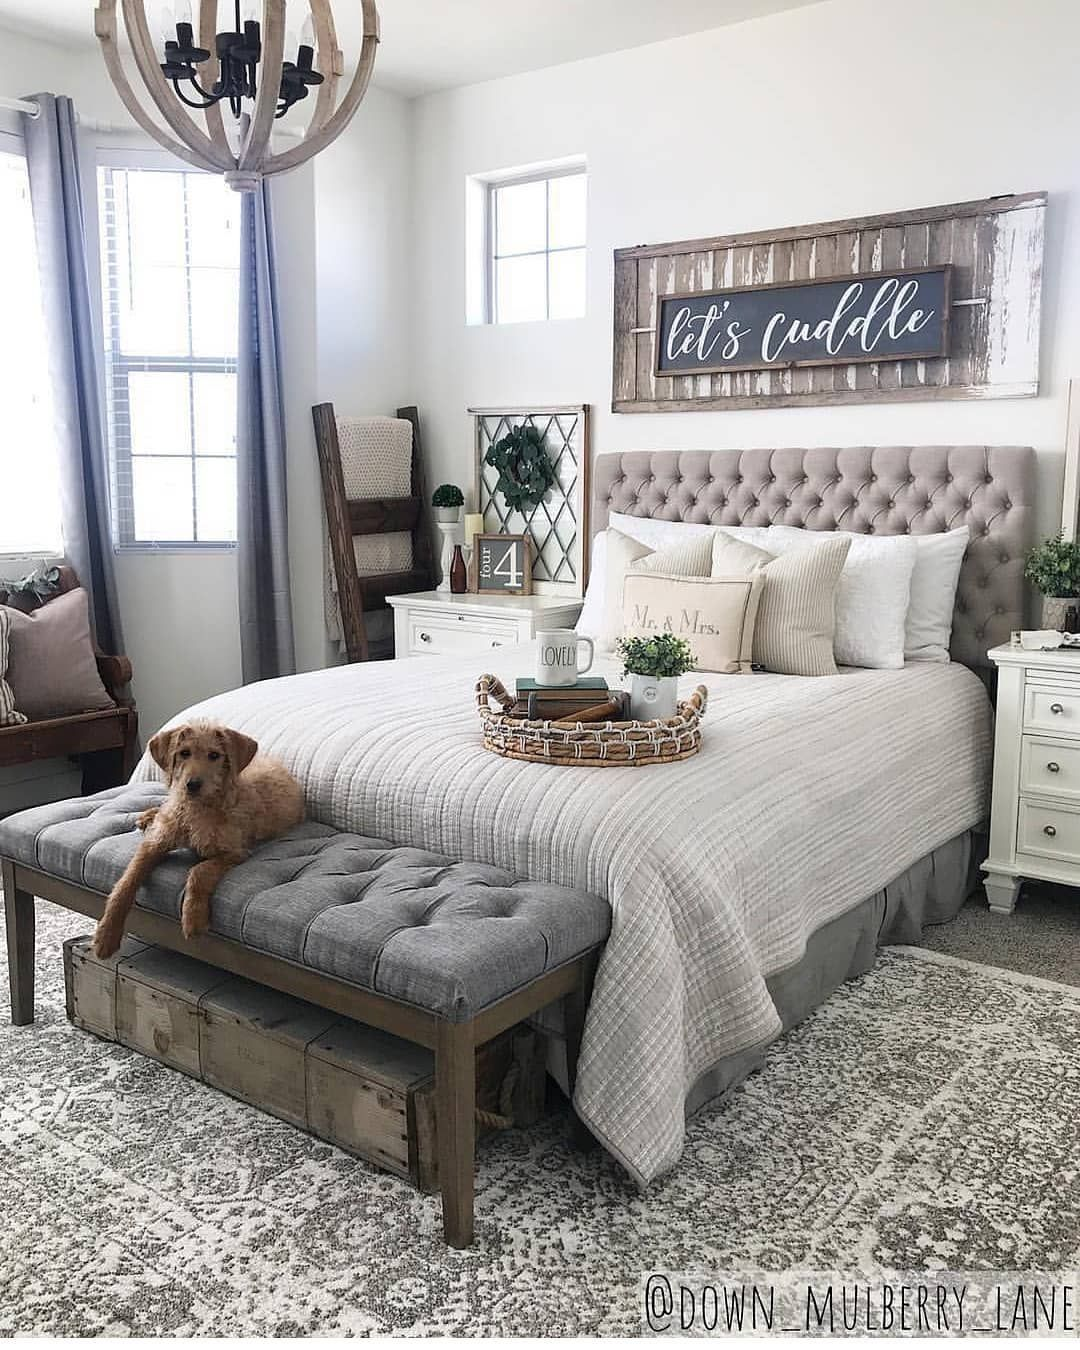 9 Farmhouse Rustic Master Bedroom Ideas - ABCHOMY  Rustic master